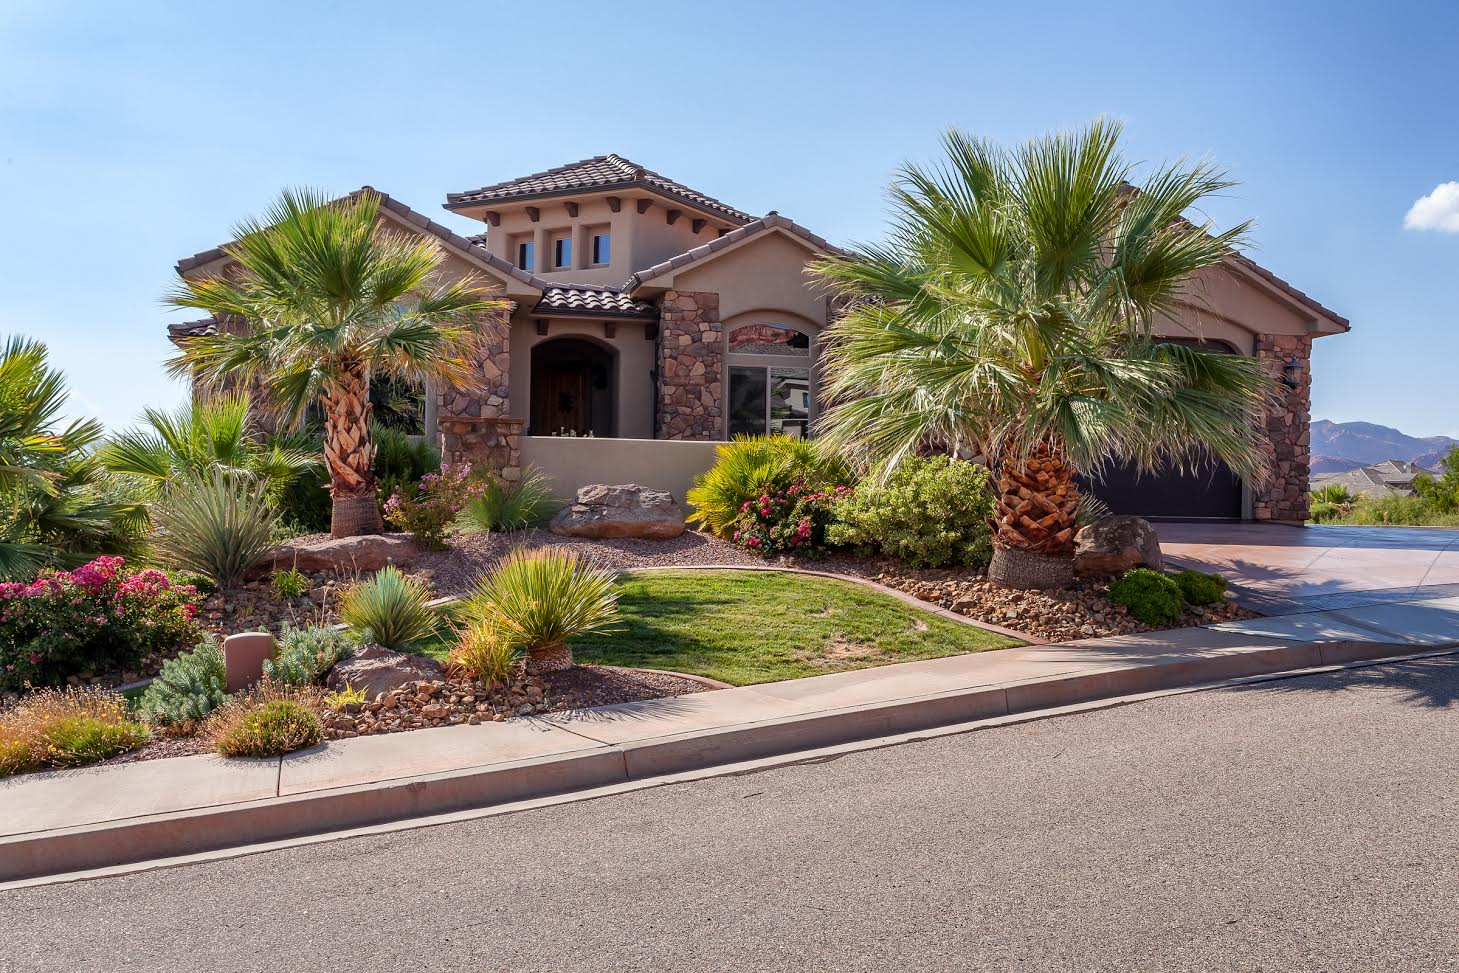 Are you Satisfied with your Homes for Rent in St. George, Utah?